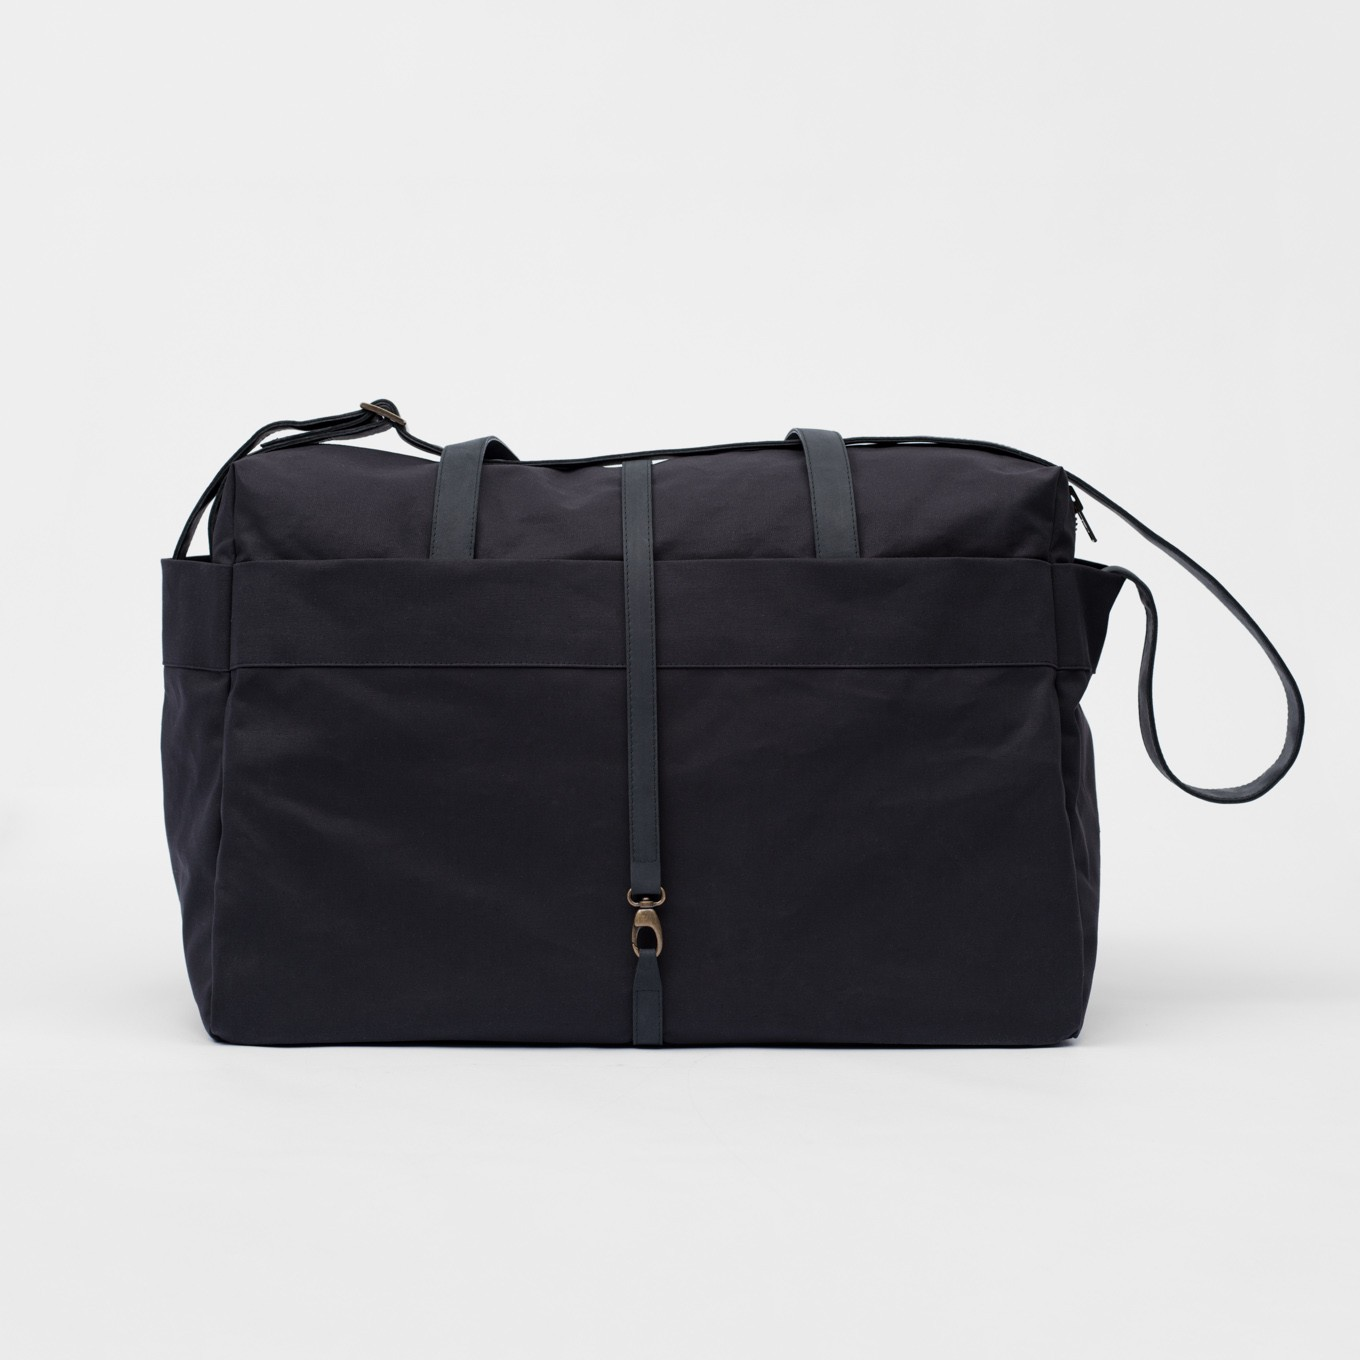 1_Travel Bag- Coated Cotton-Leather